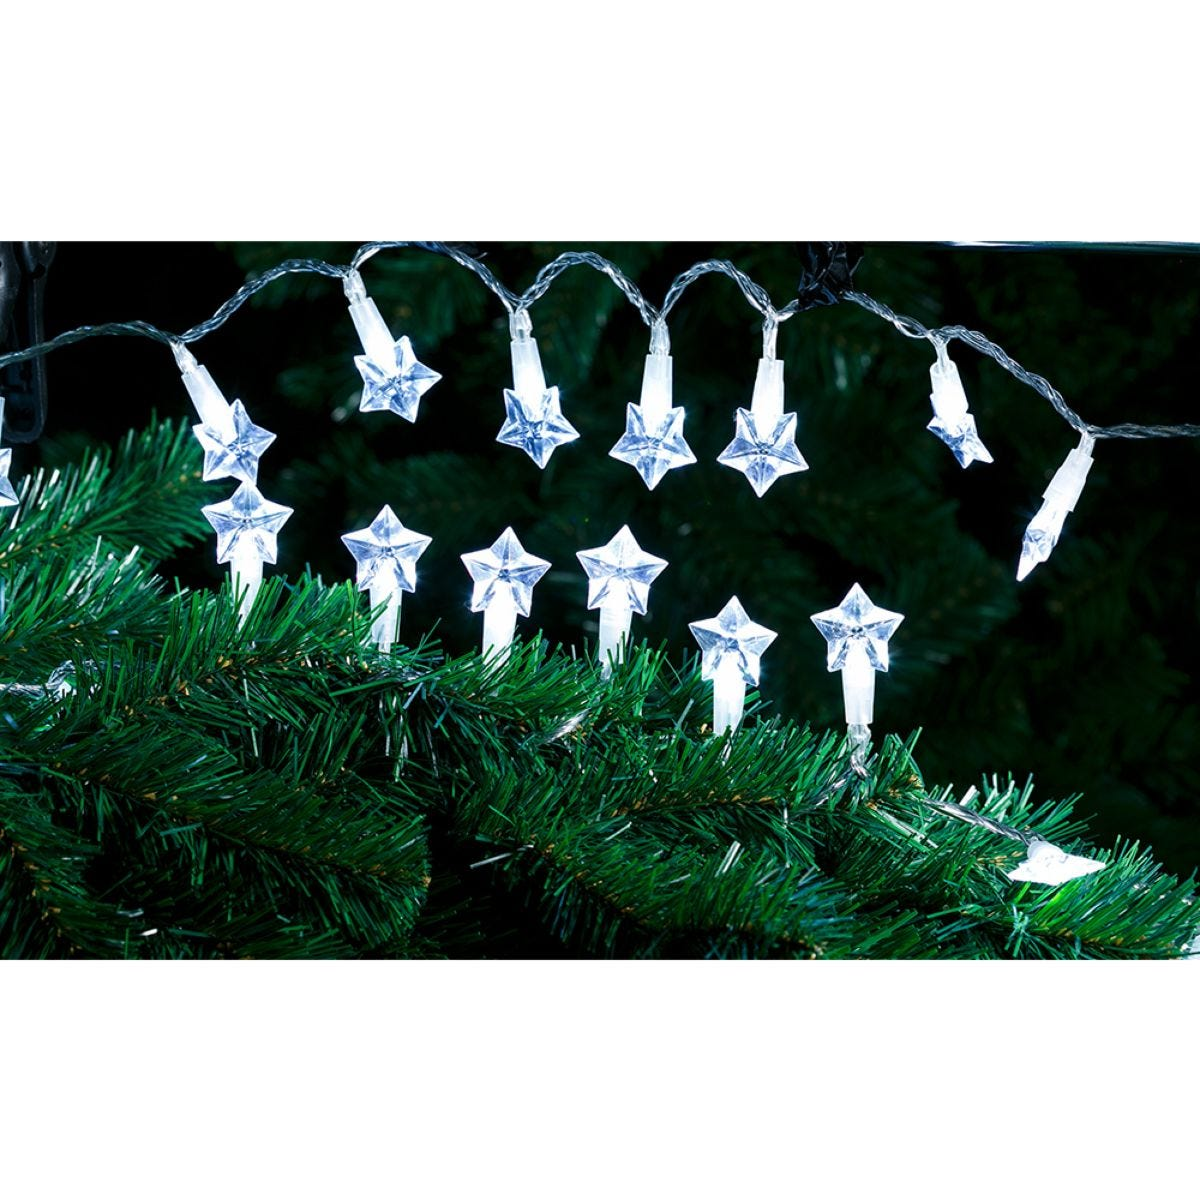 Robert Dyas Battery Operated 20 LED Star String Lights - Ice White